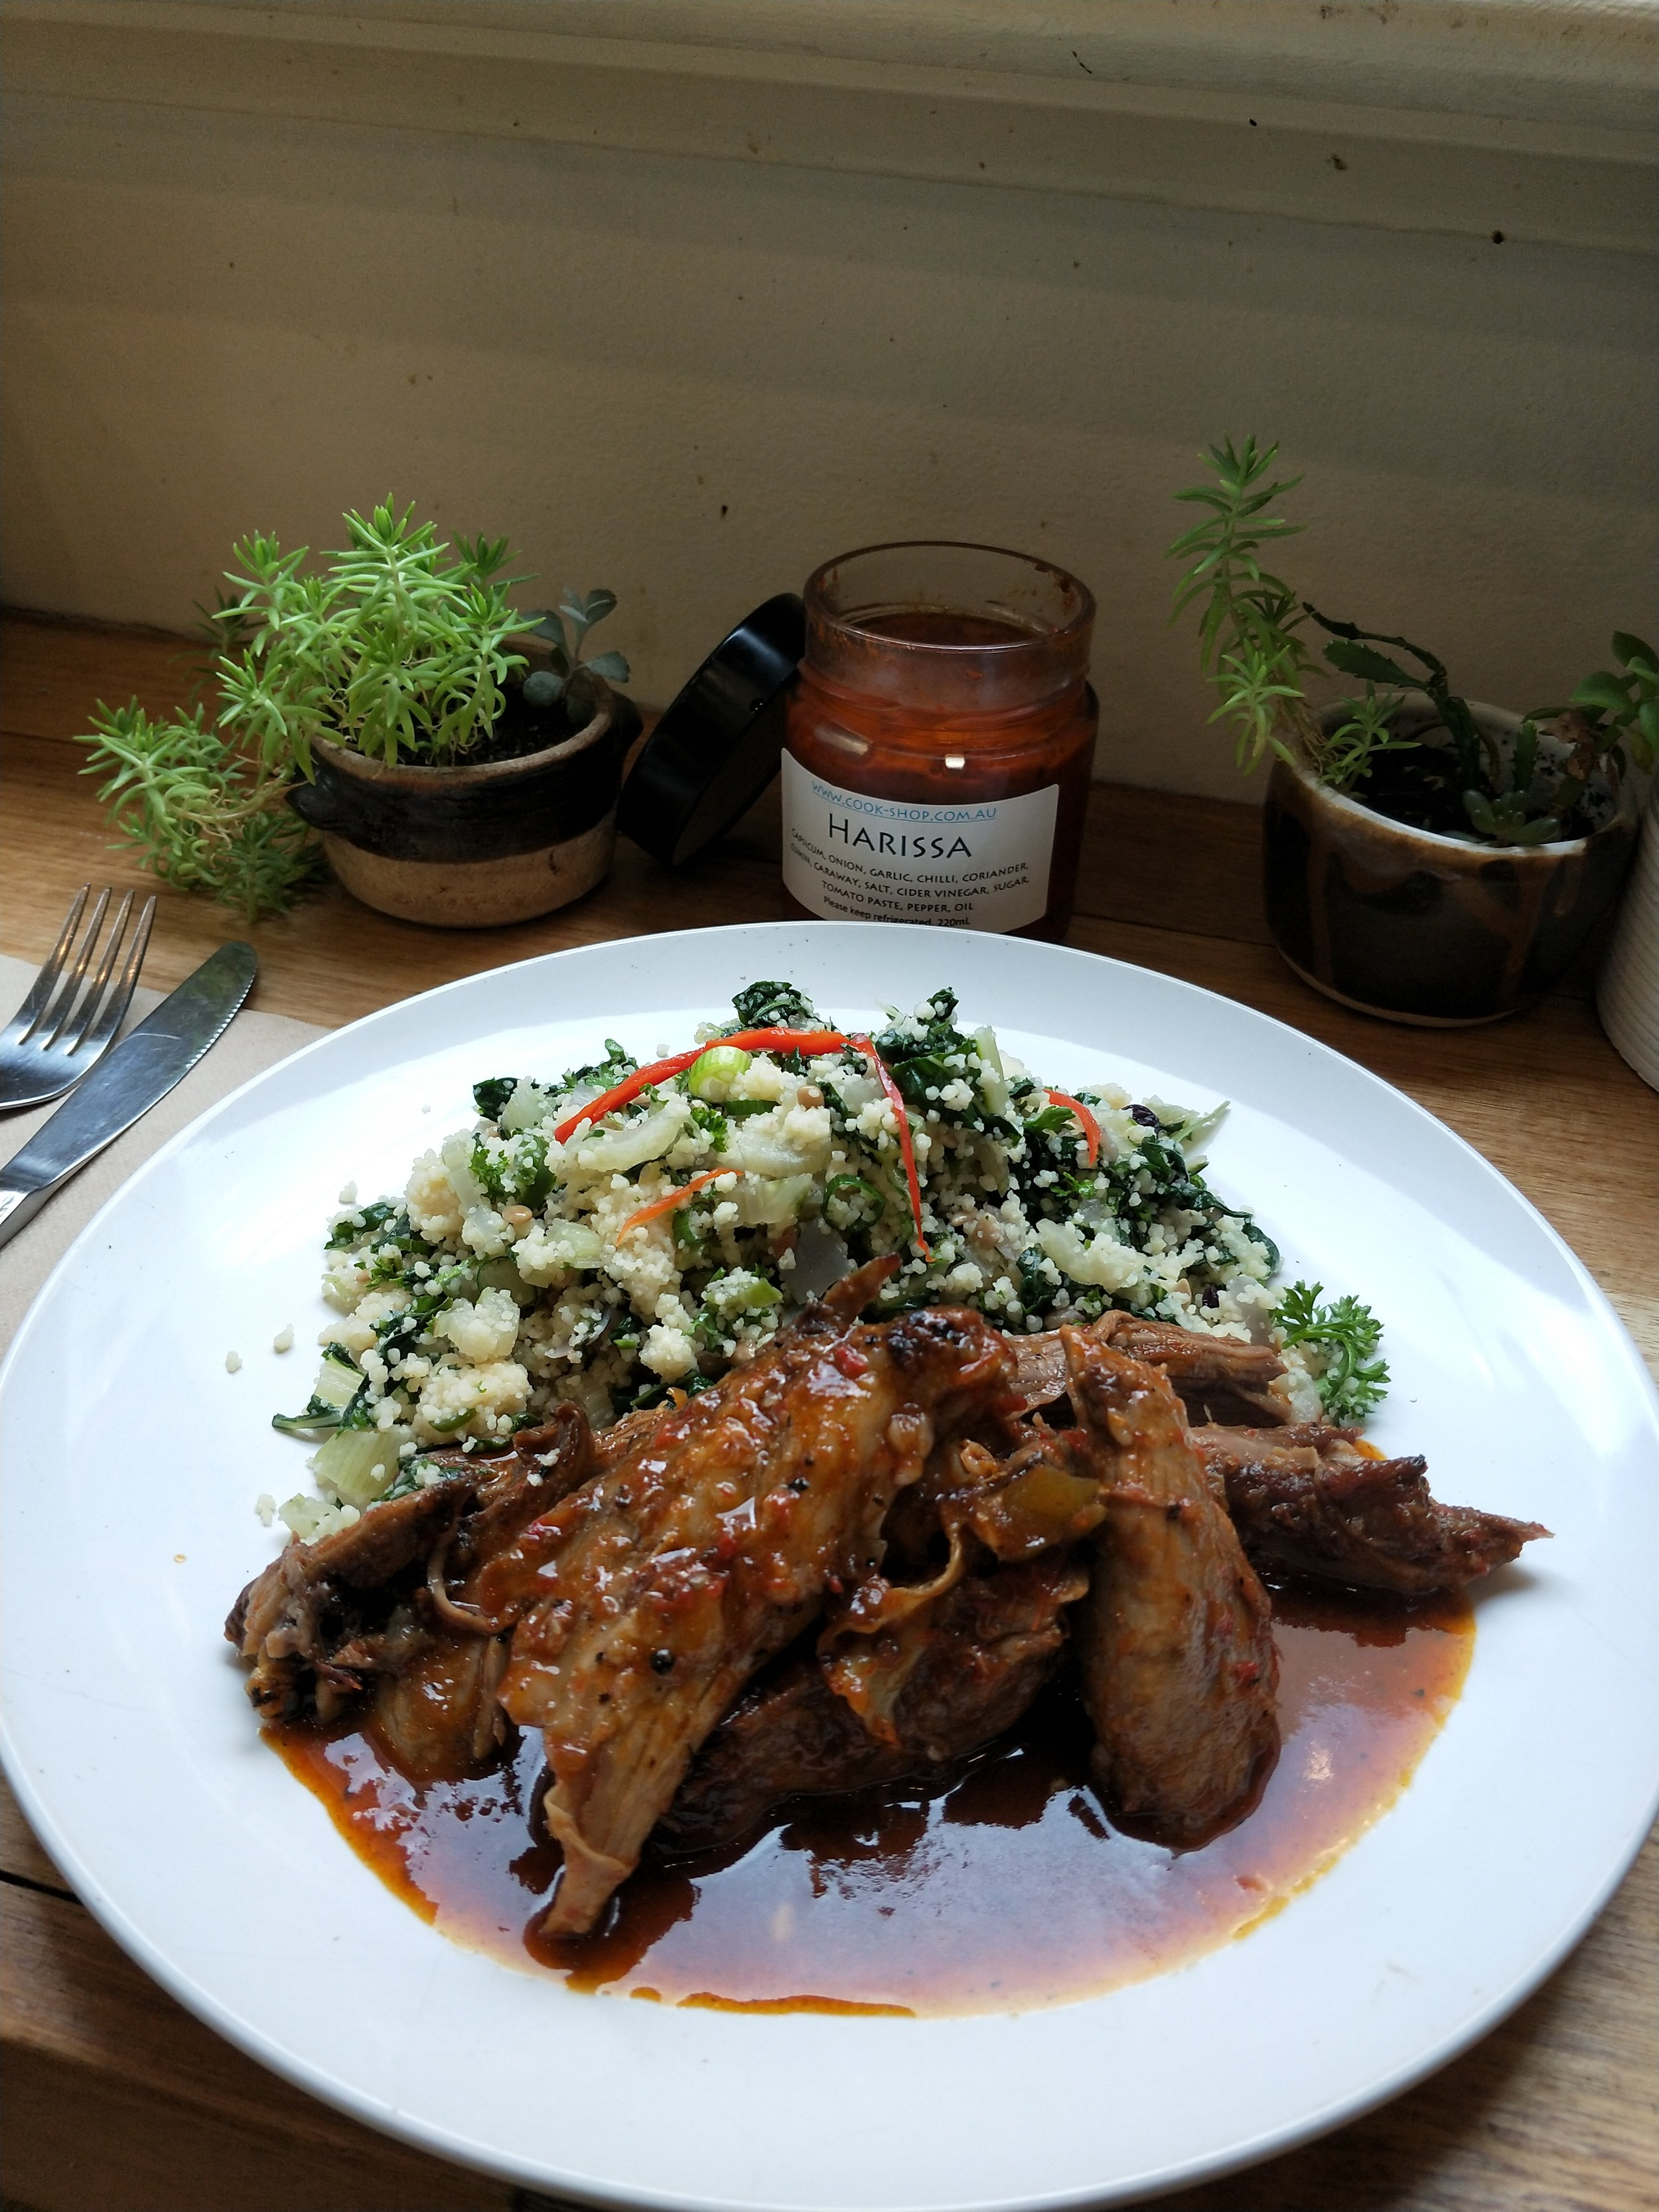 Meat Special Harissa Spiced Goat w/ Tabbouli